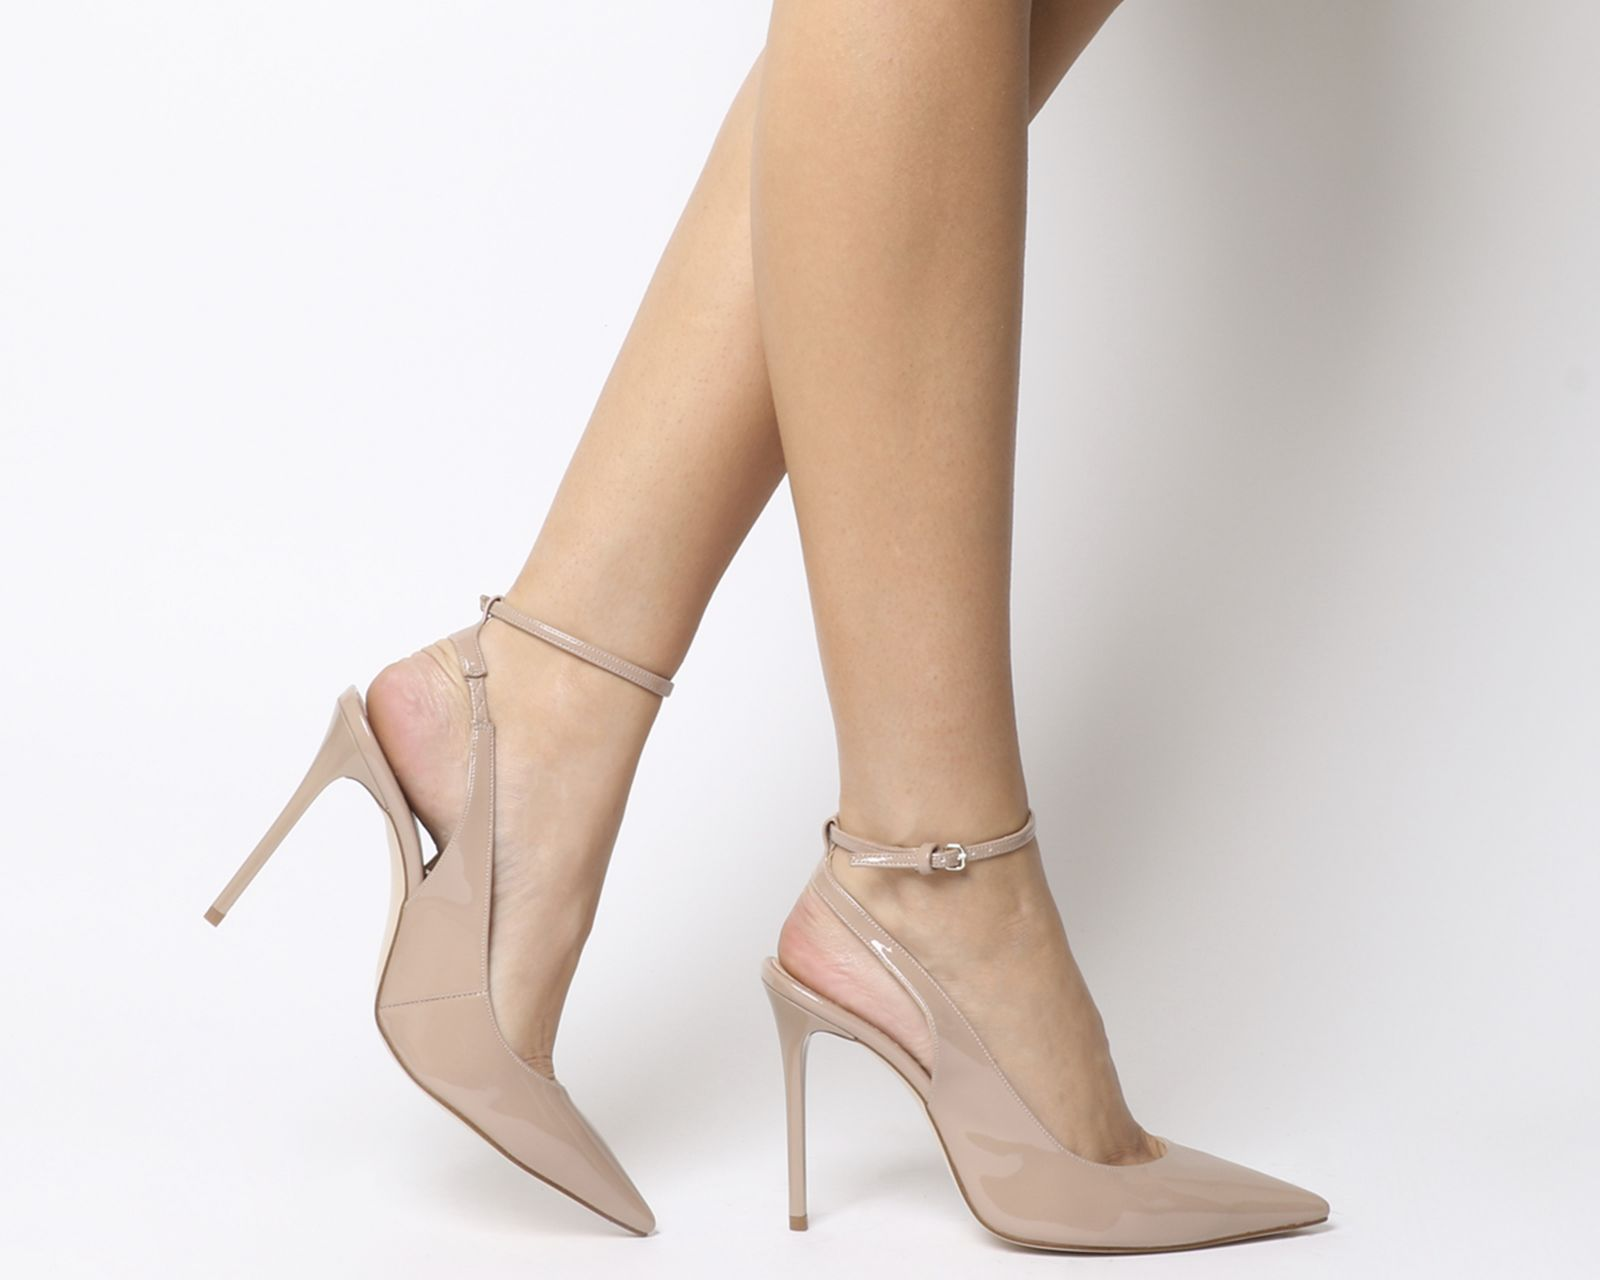 Dune Carin Slingback Mid Heel Court Shoes, Nude at John